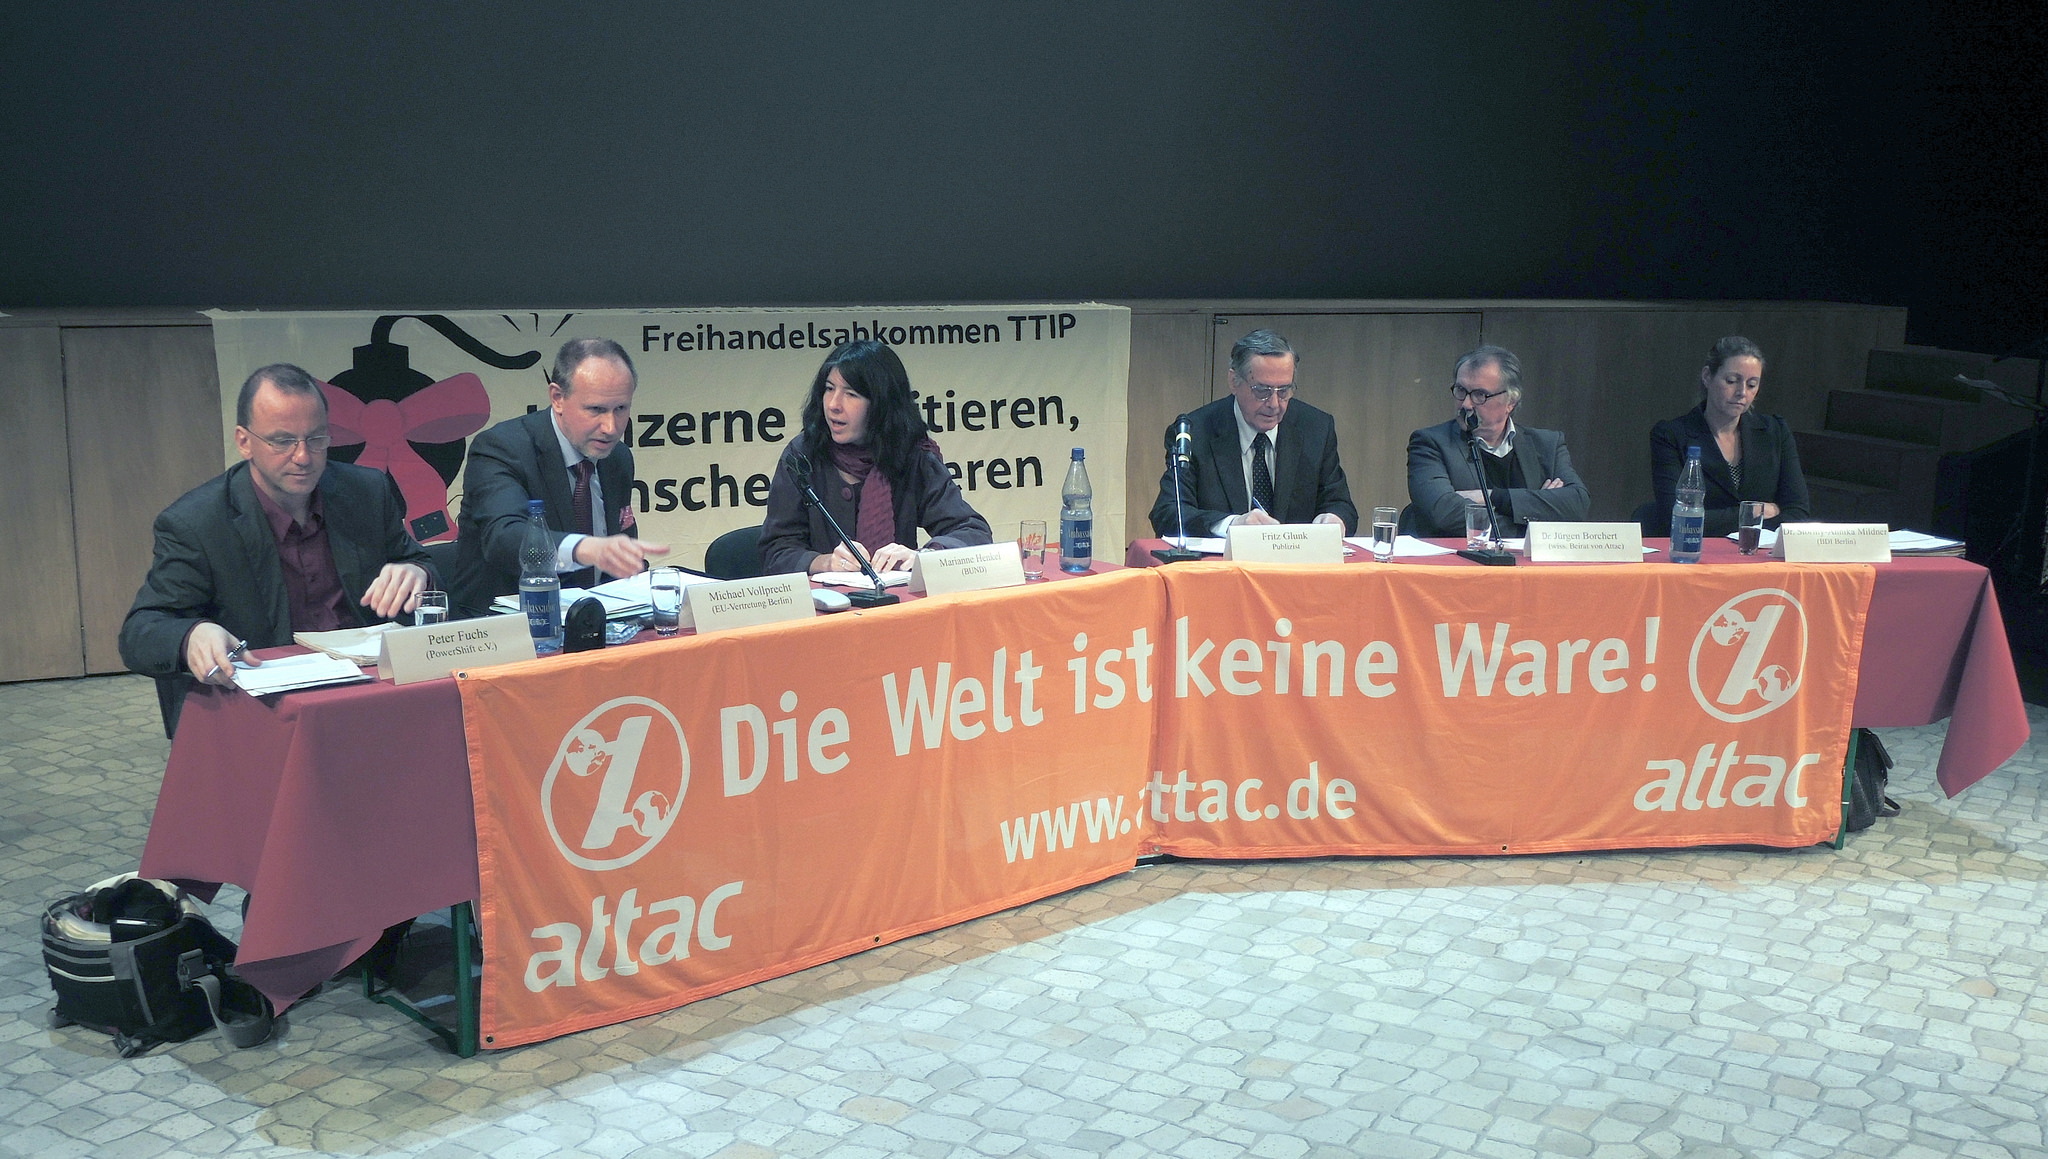 Podiumsdiskussion zu TTIP im GRIPS-Theater (Foto: Mehr Demokratie e.V. (cc, via Flickr))